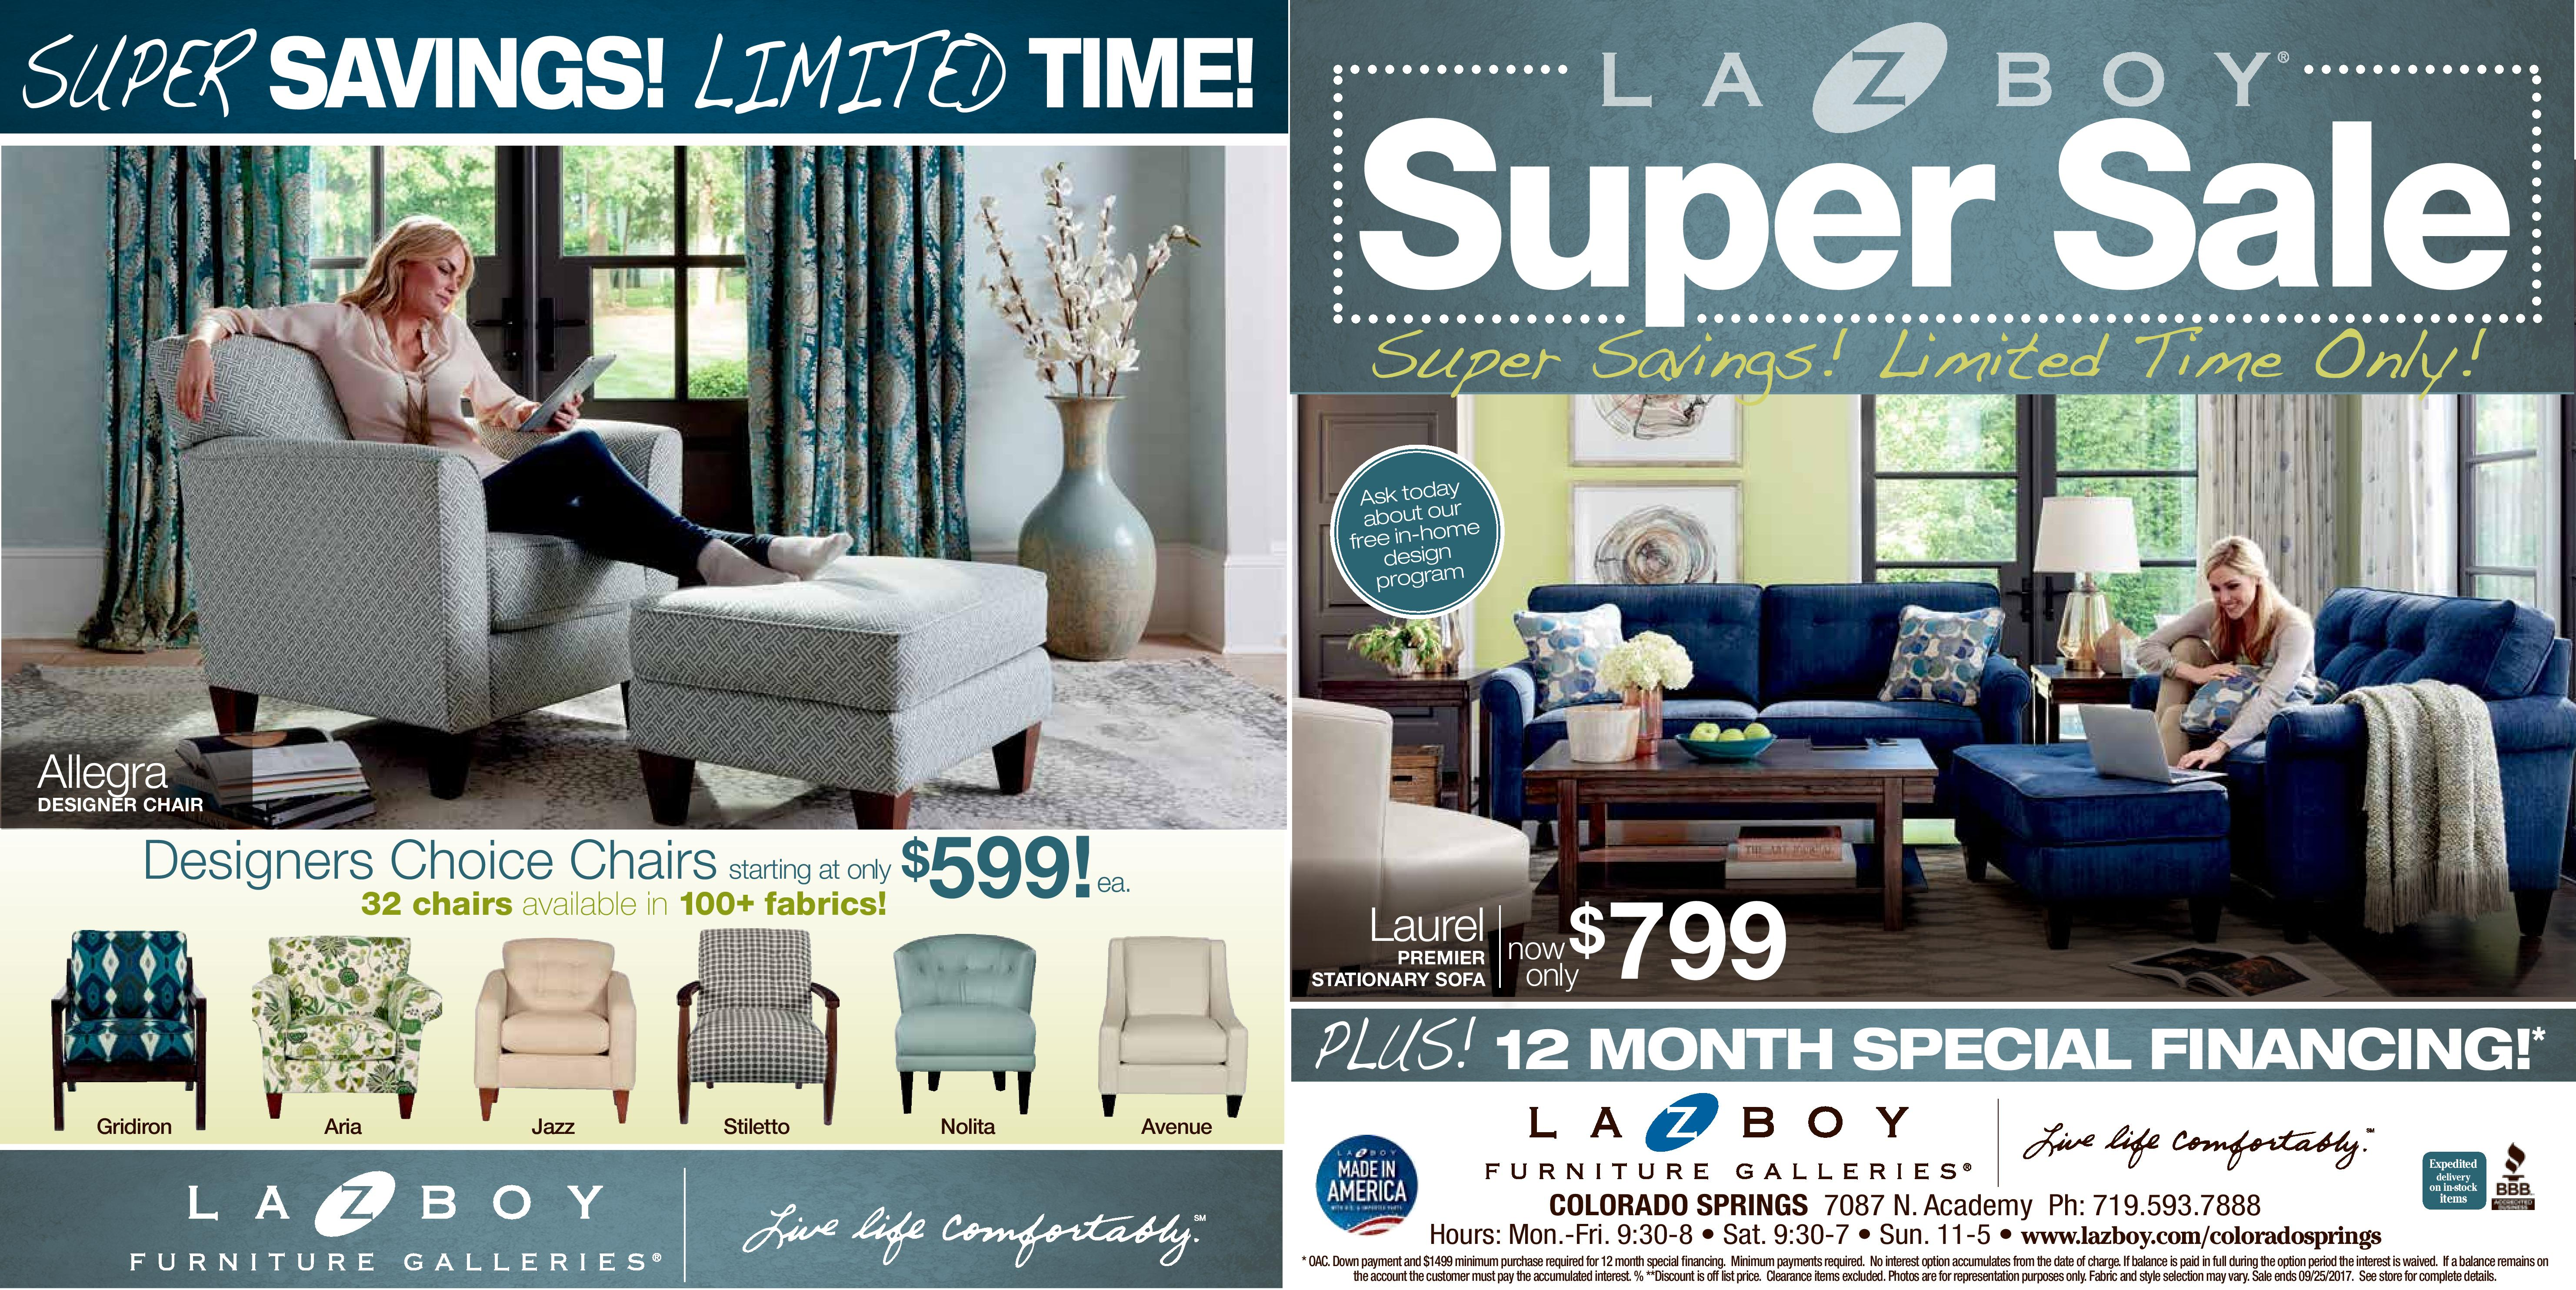 Living Room Sets Colorado Springs furniture - la-z-boy sofas, chairs, recliners and couches - find a